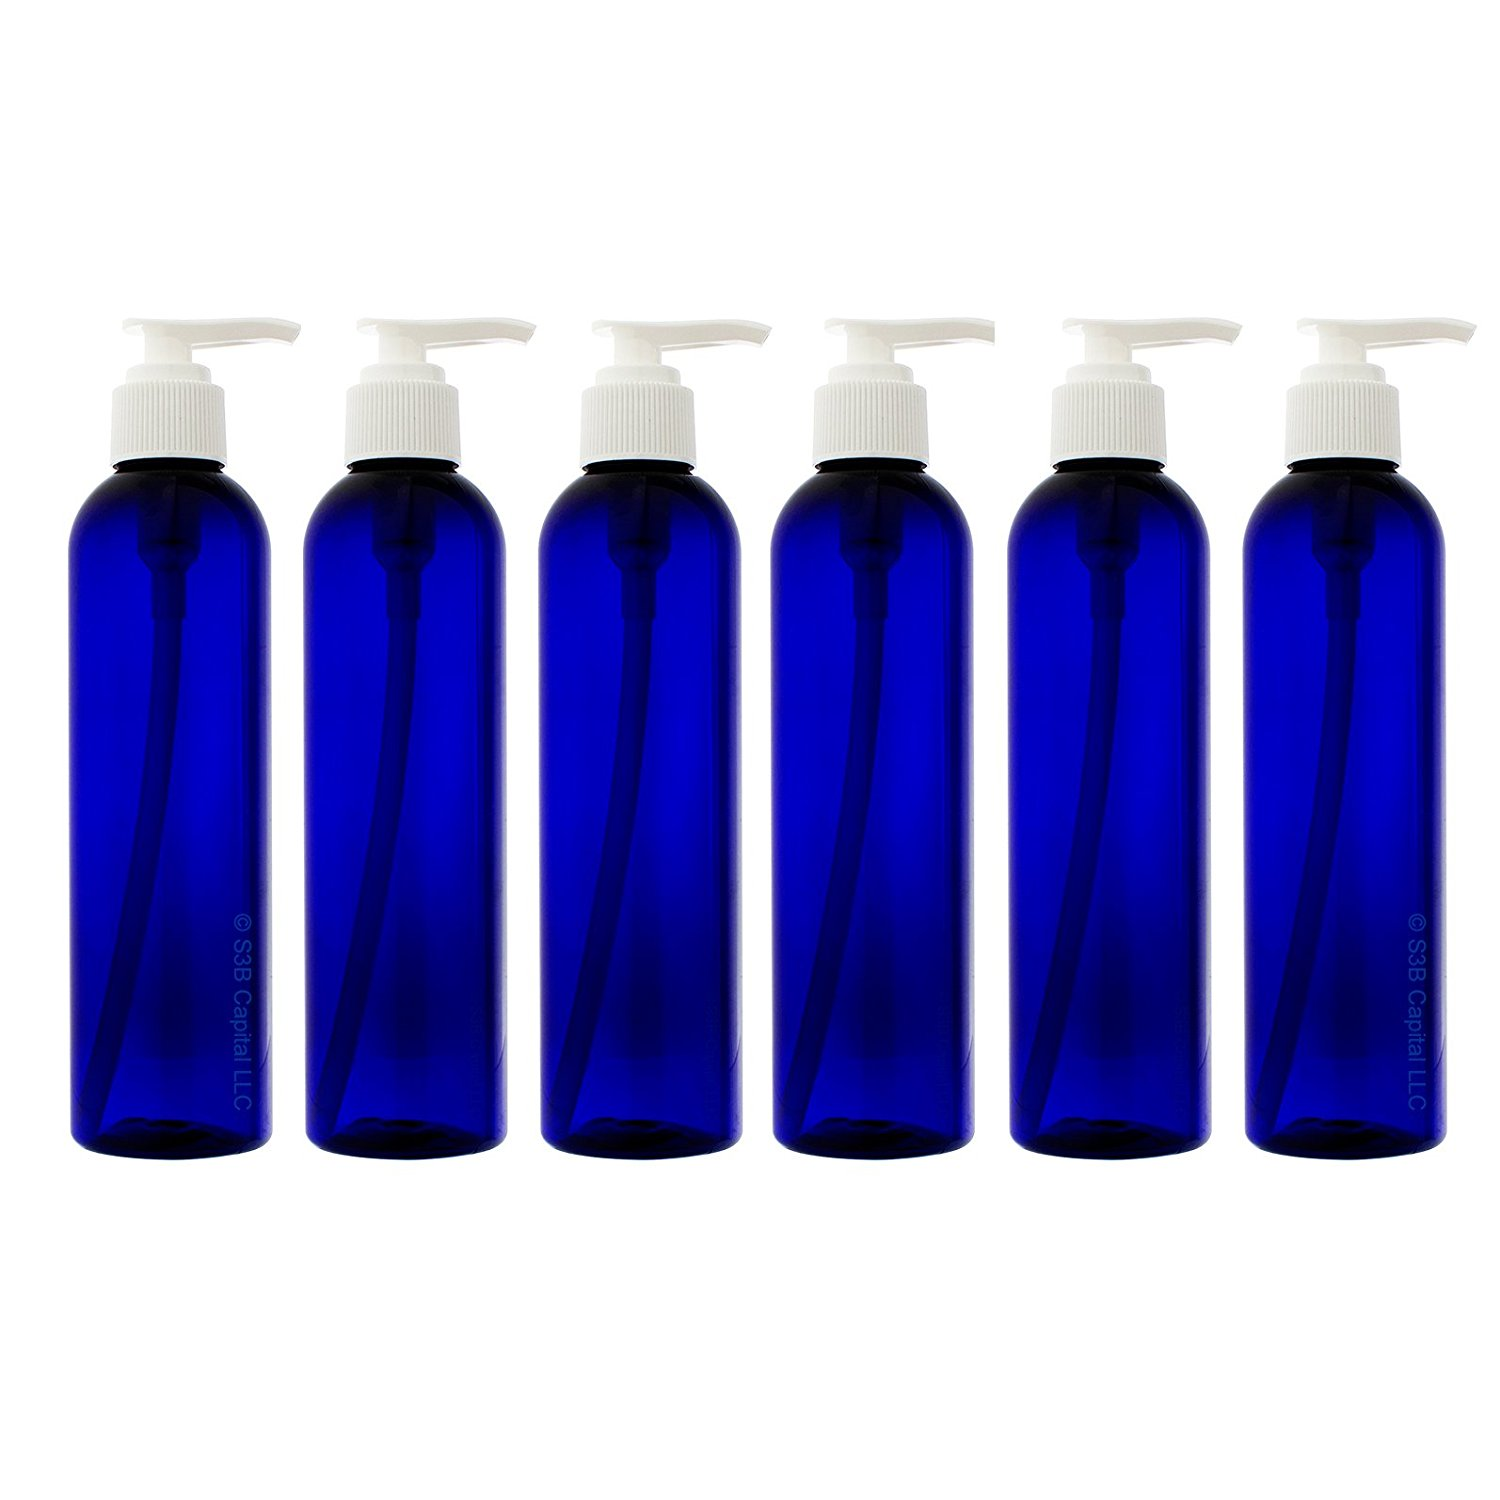 78bd0a733297 Cheap Baby Blue Lotion Bottles, find Baby Blue Lotion Bottles deals ...